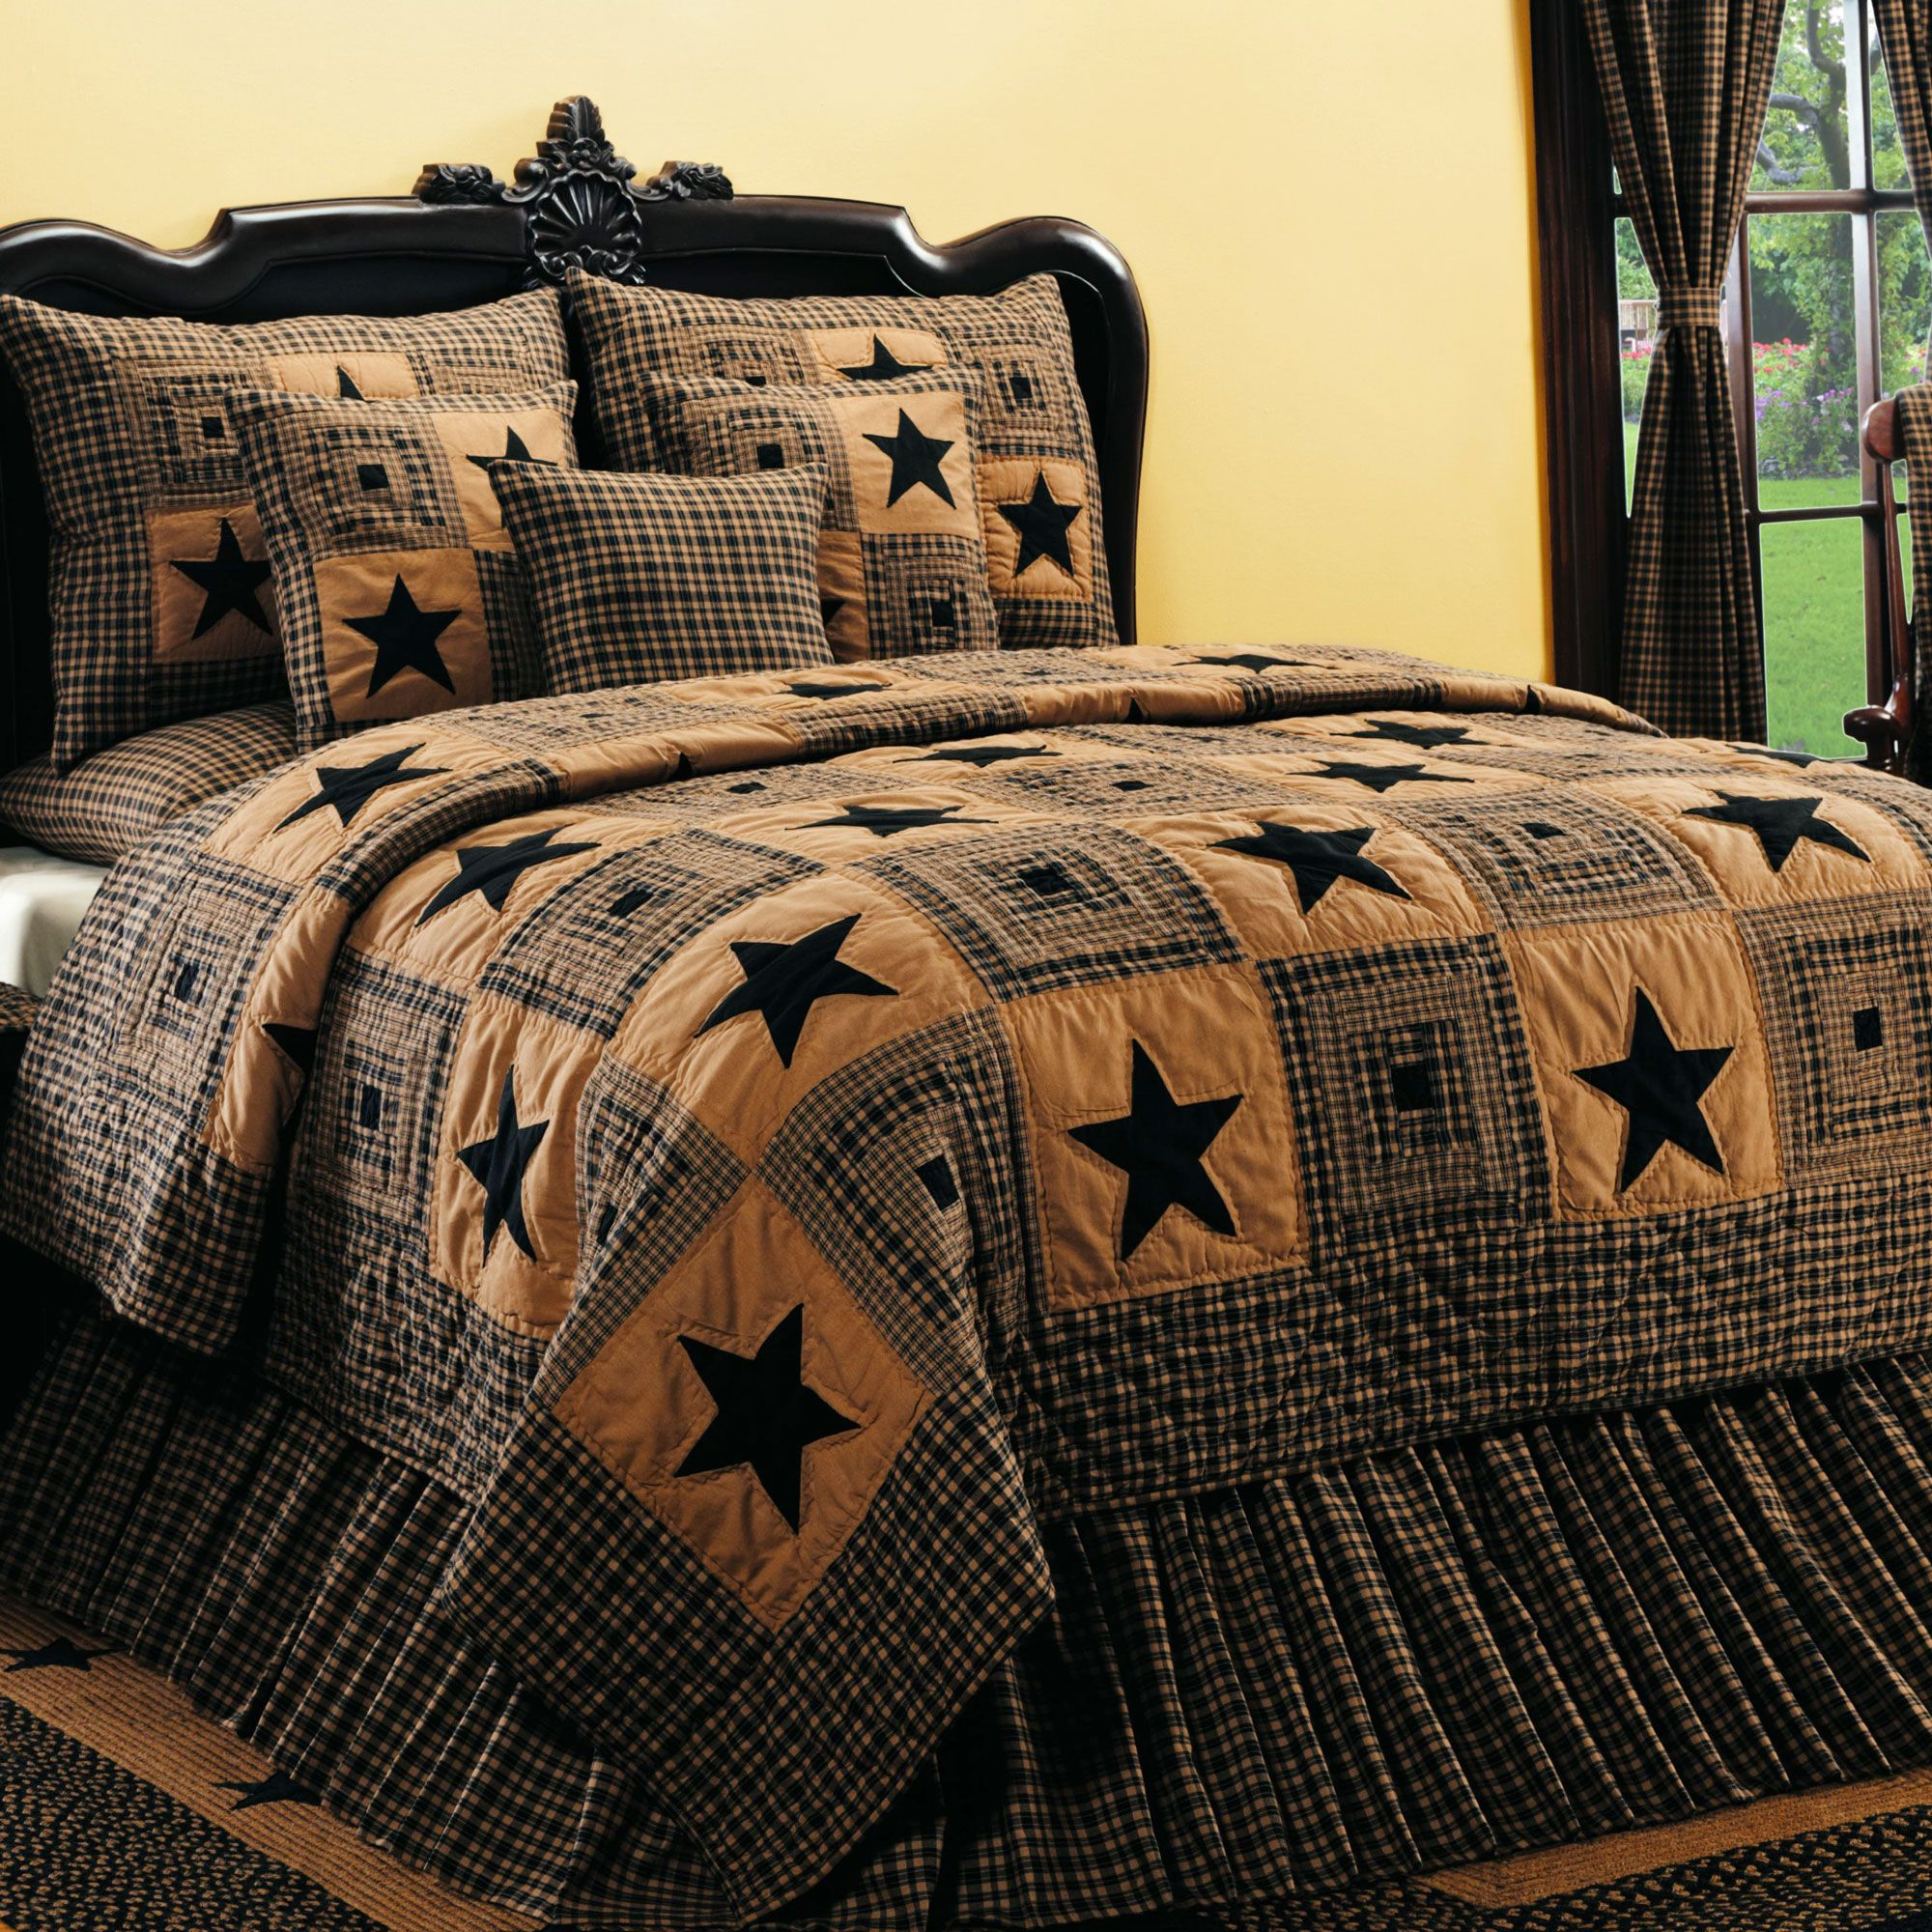 Check out the deal on Vintage Star Black Queen Sized Quilt at